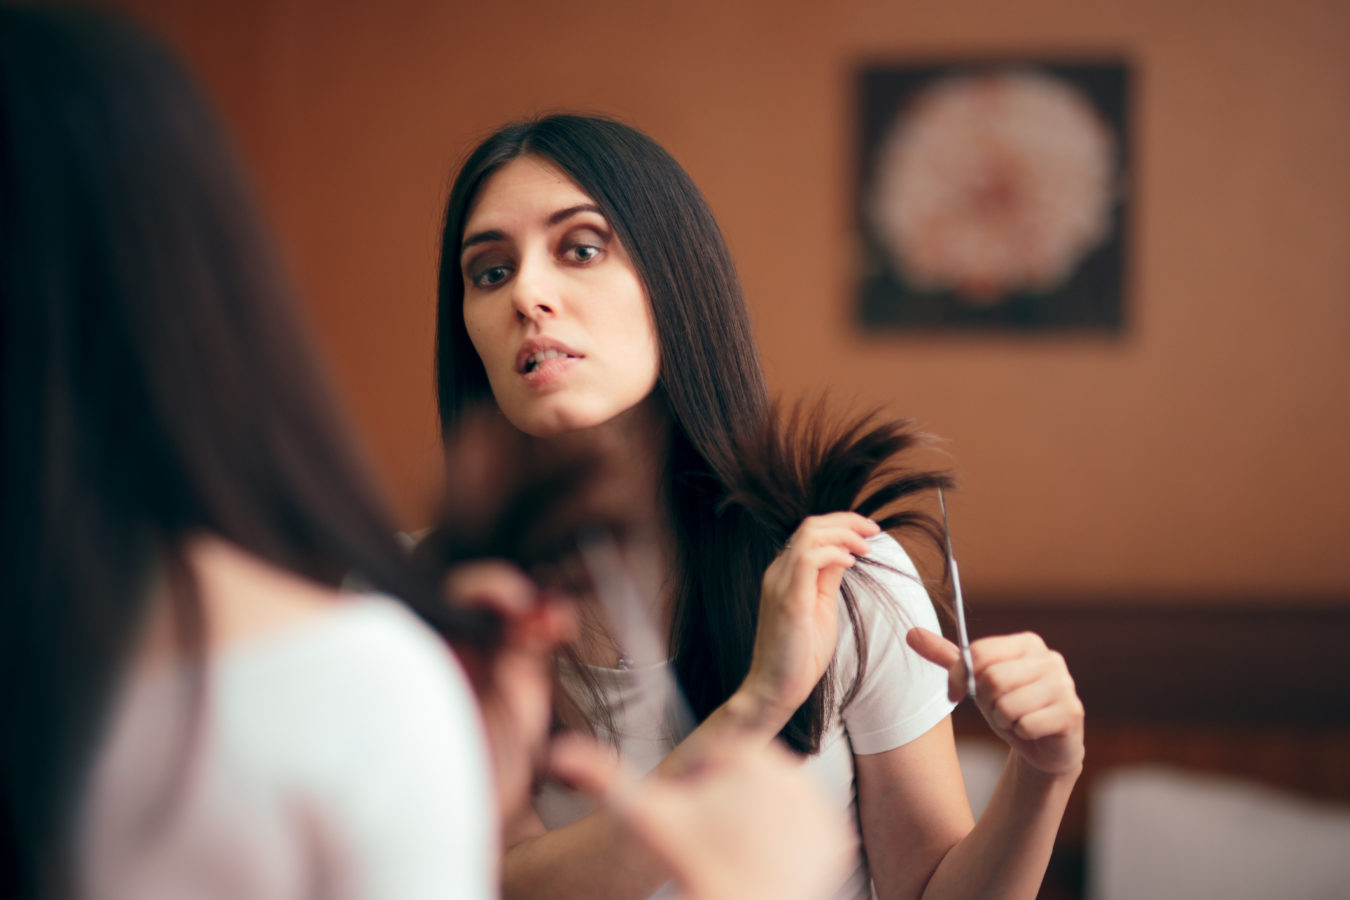 LSA Basics: How to cut your hair at home